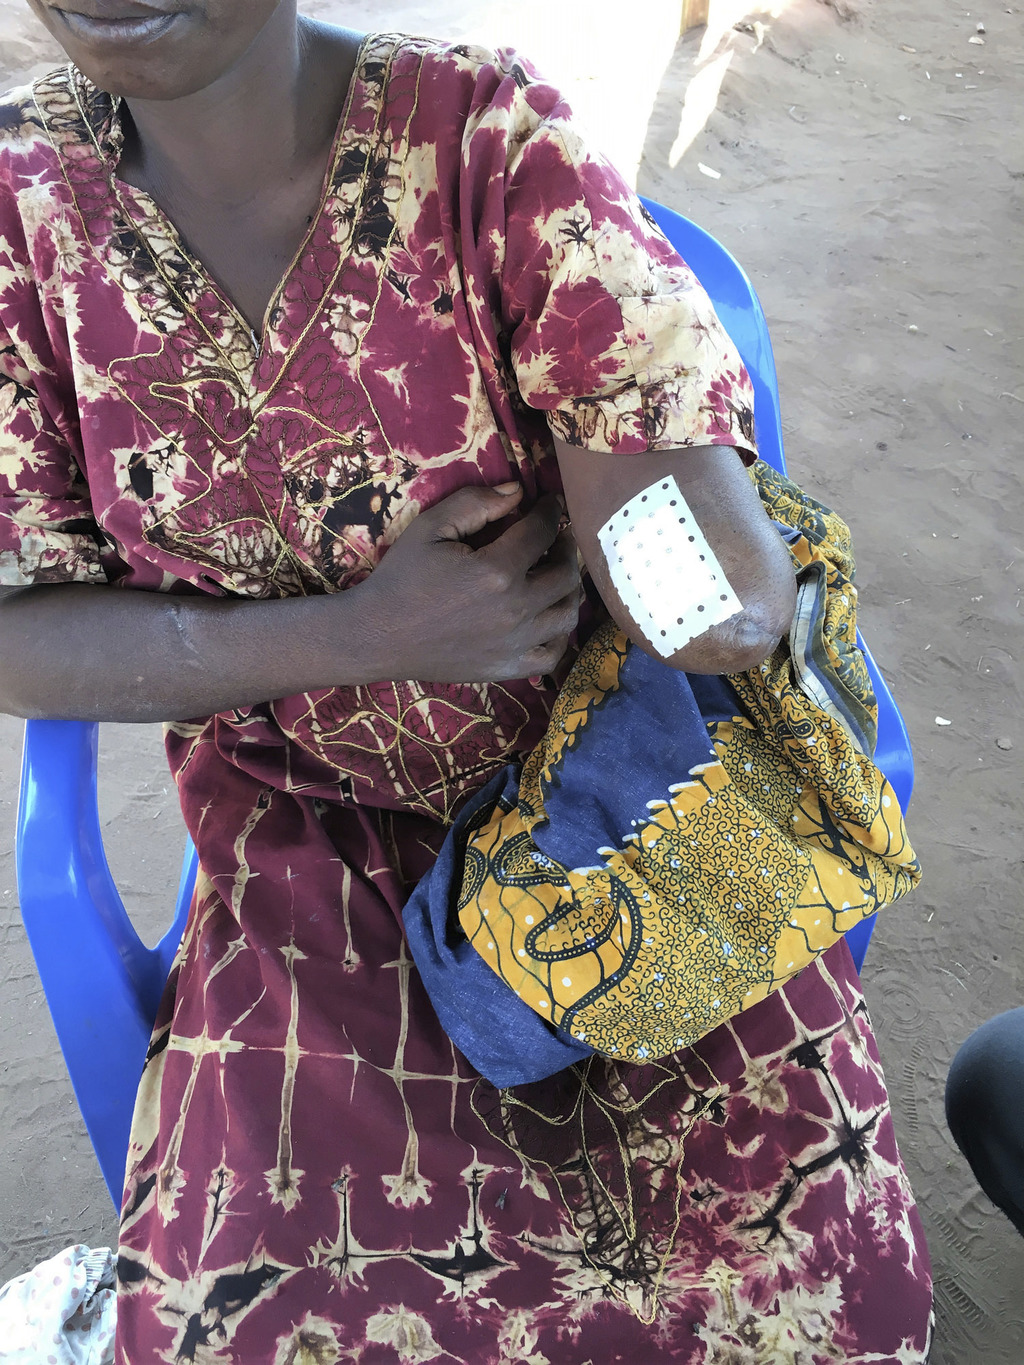 Undated photo provided by OHCHR in Geneva, shows a woman with amputated arm  in the province Lunda Norte, Angola in June 2017. U.N. human rights inves...